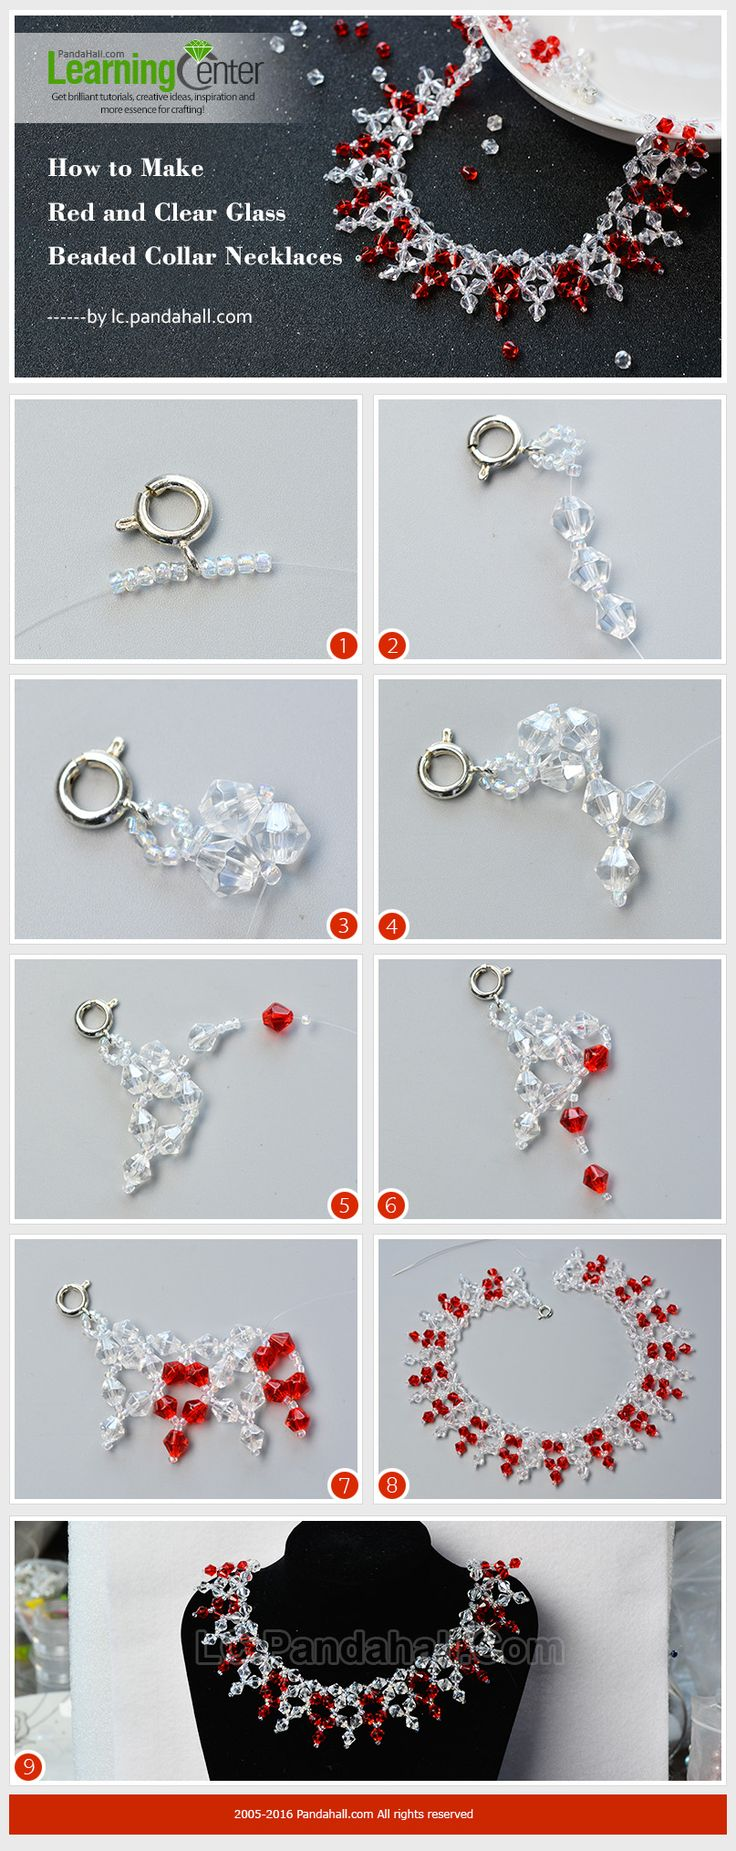 How to Make Red and Clear Glass Beaded Collar Necklaces from LC.Pandahall.com